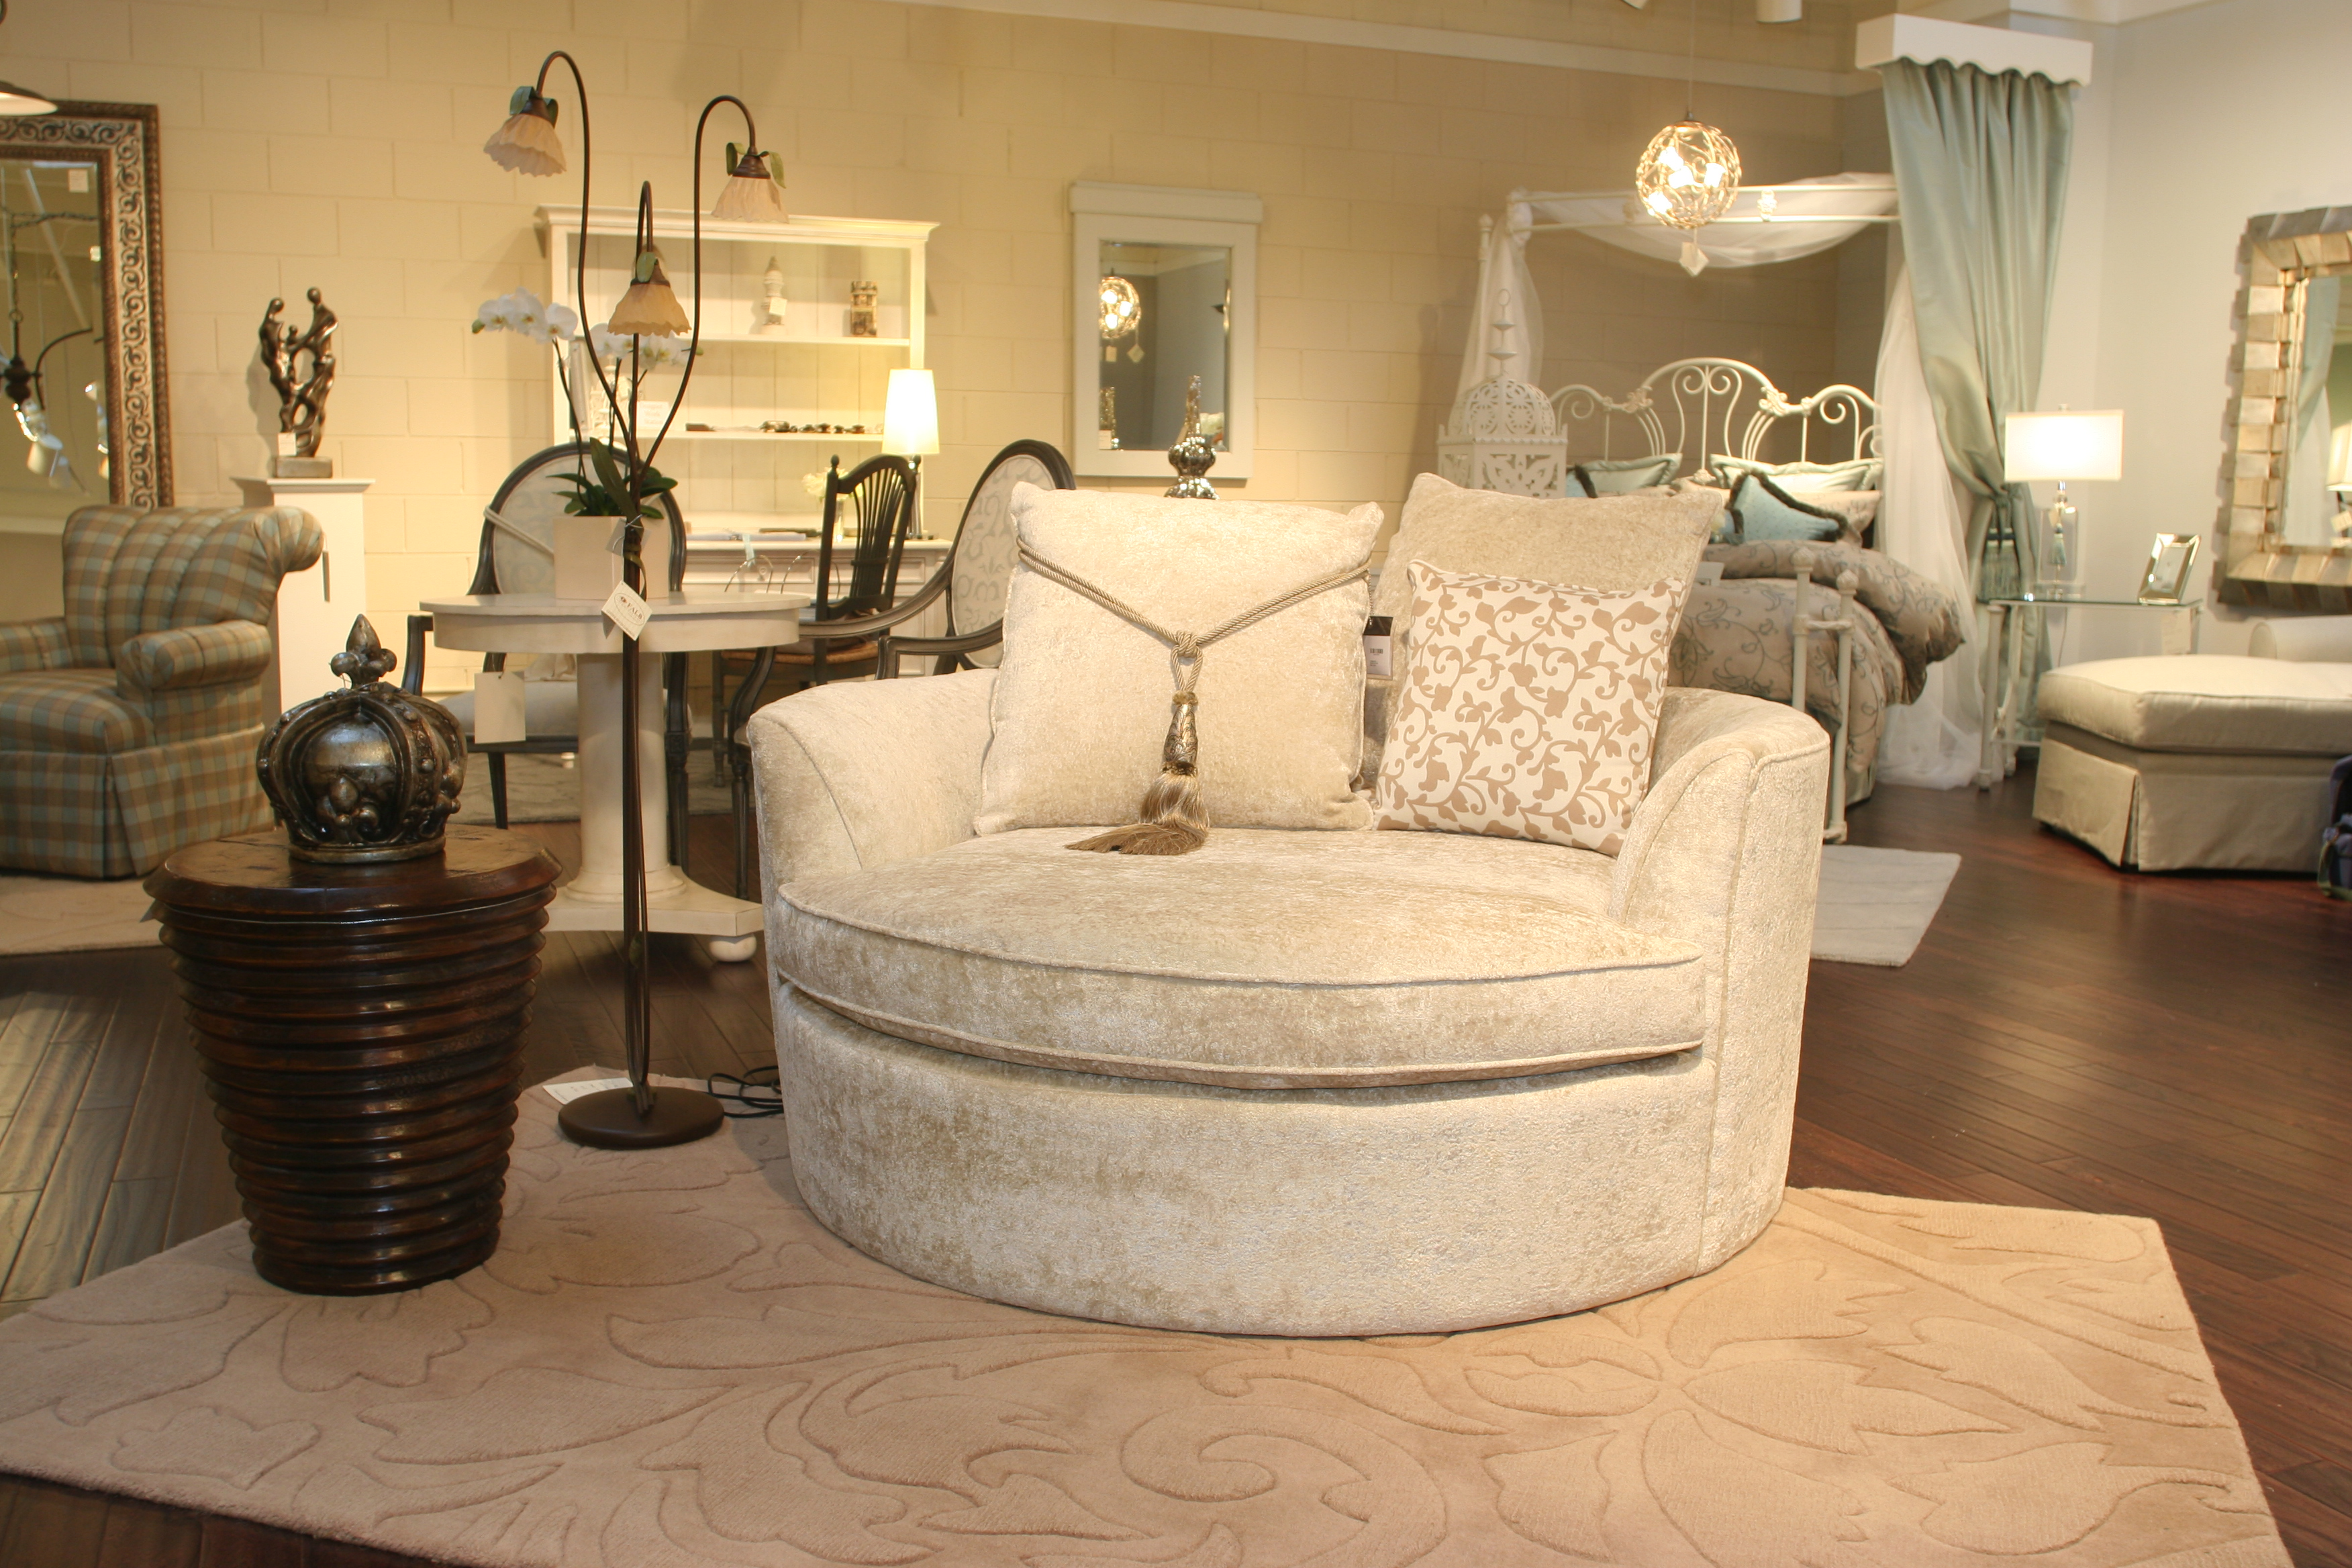 Round Settee Represents A Symbol Of Minimalist Style For